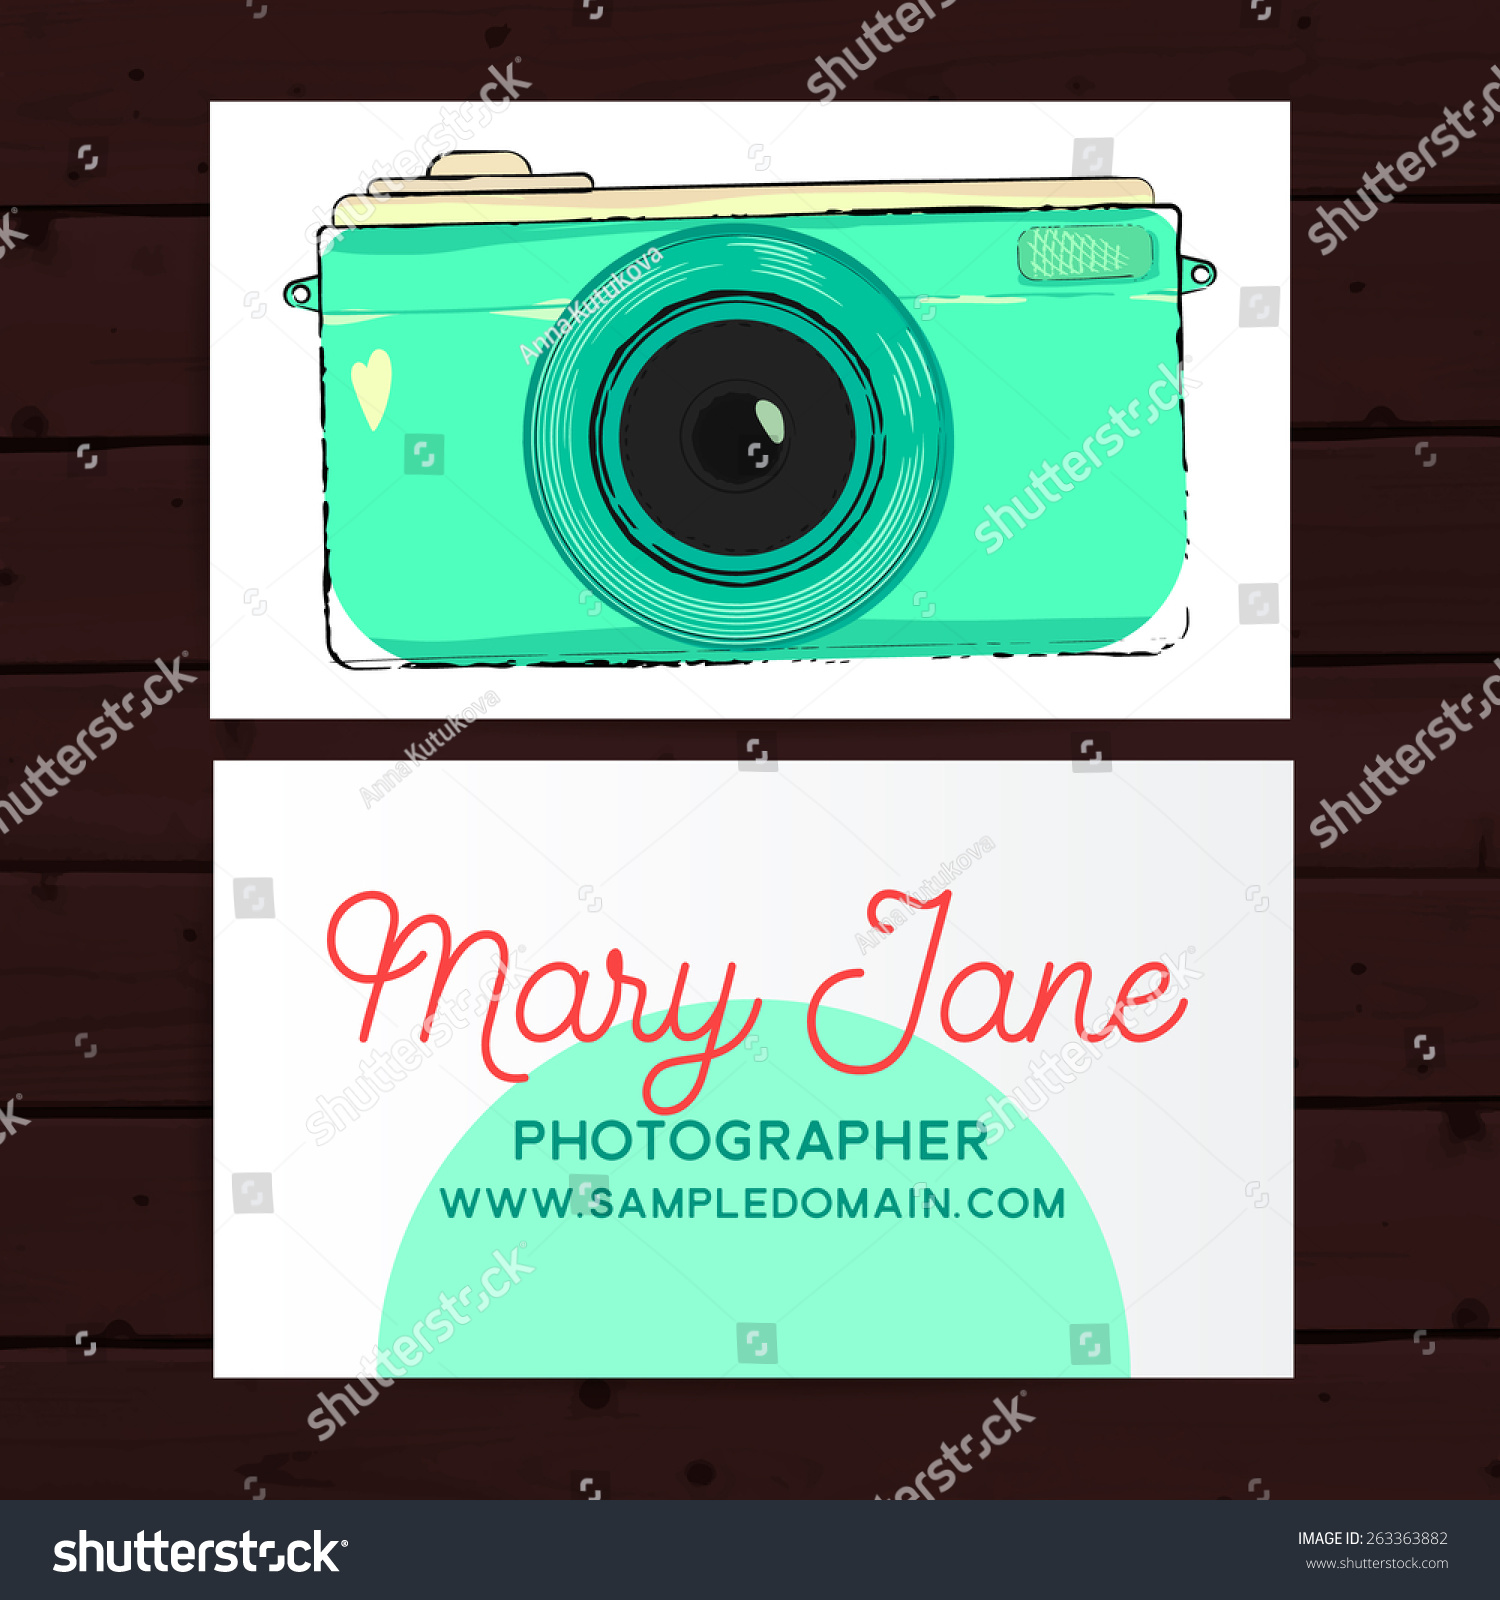 Photographer Business Card Template Retro Photo Stock Vector